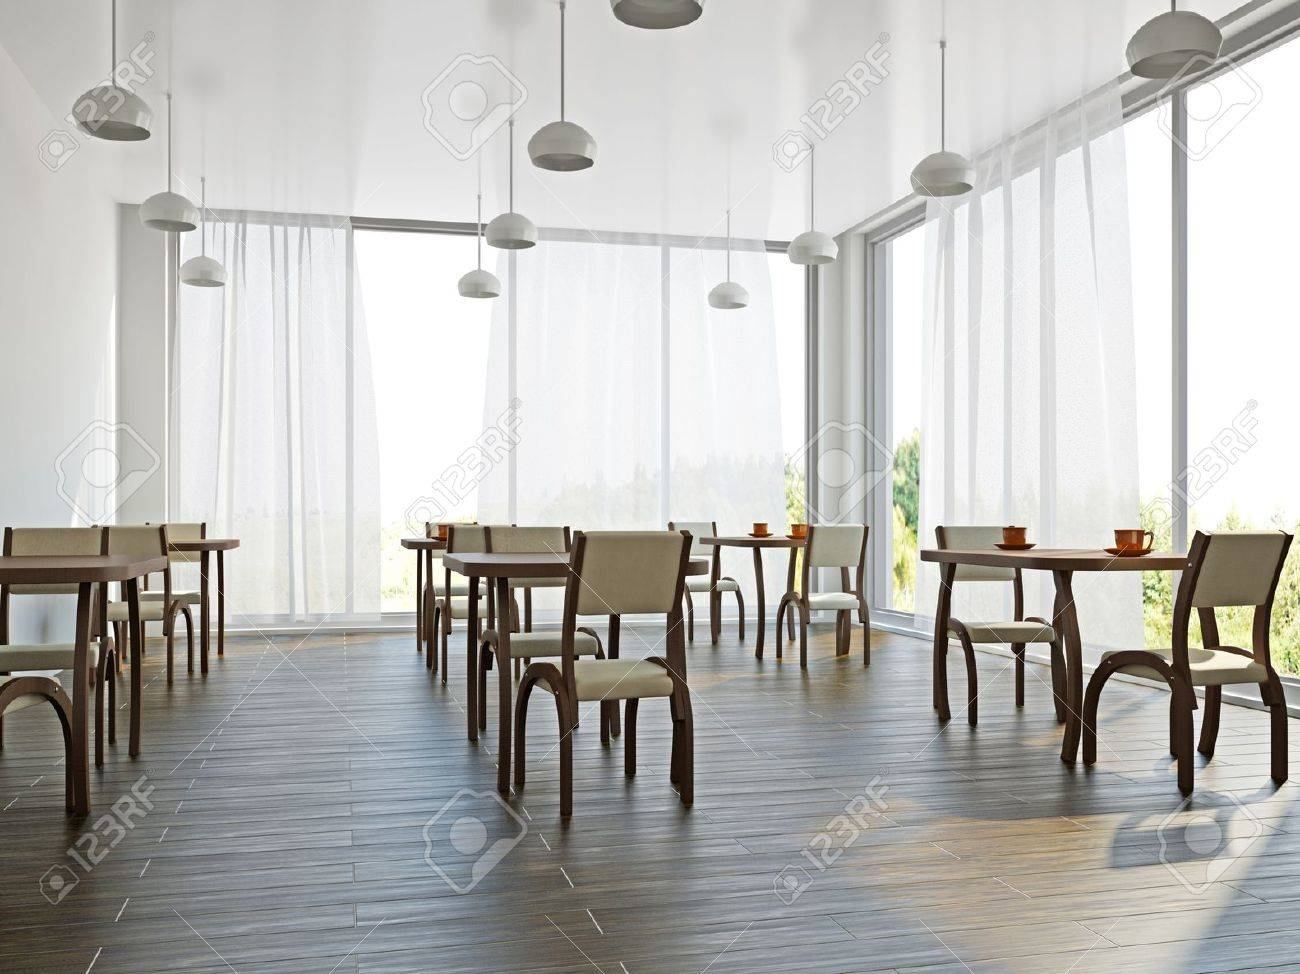 cafe with wooden furniture and large windows stock photo, picture